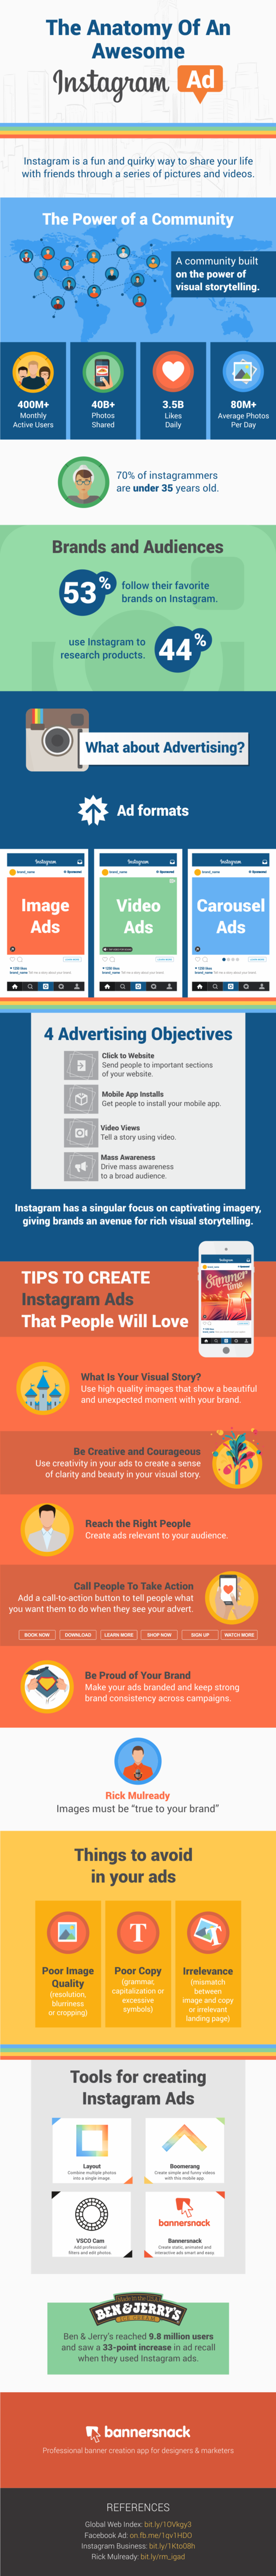 The Anatomy Of An Awesome Instagram Ad - Bannersnack